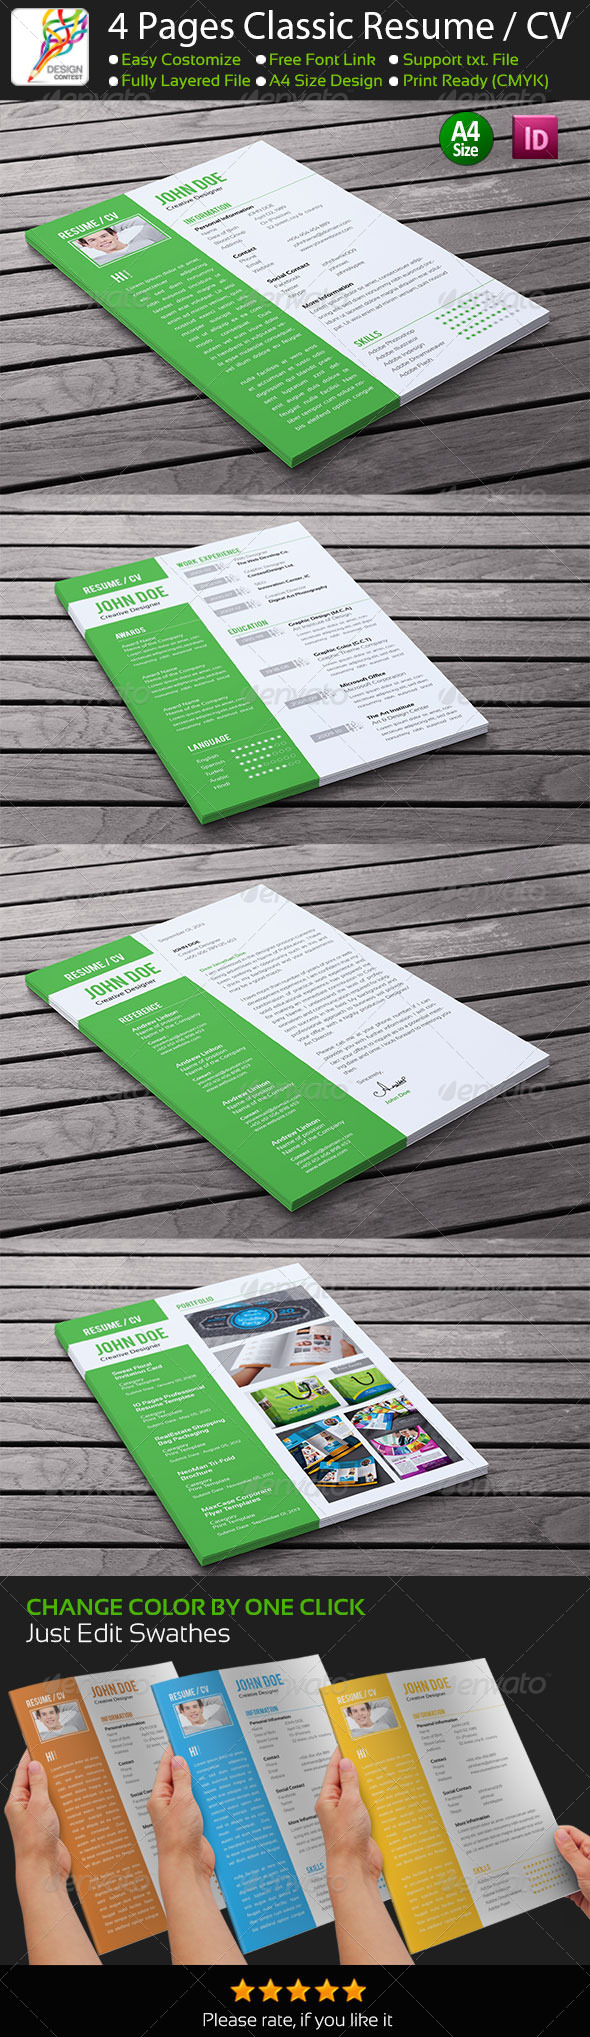 4 Pages Classic InDesign Resume